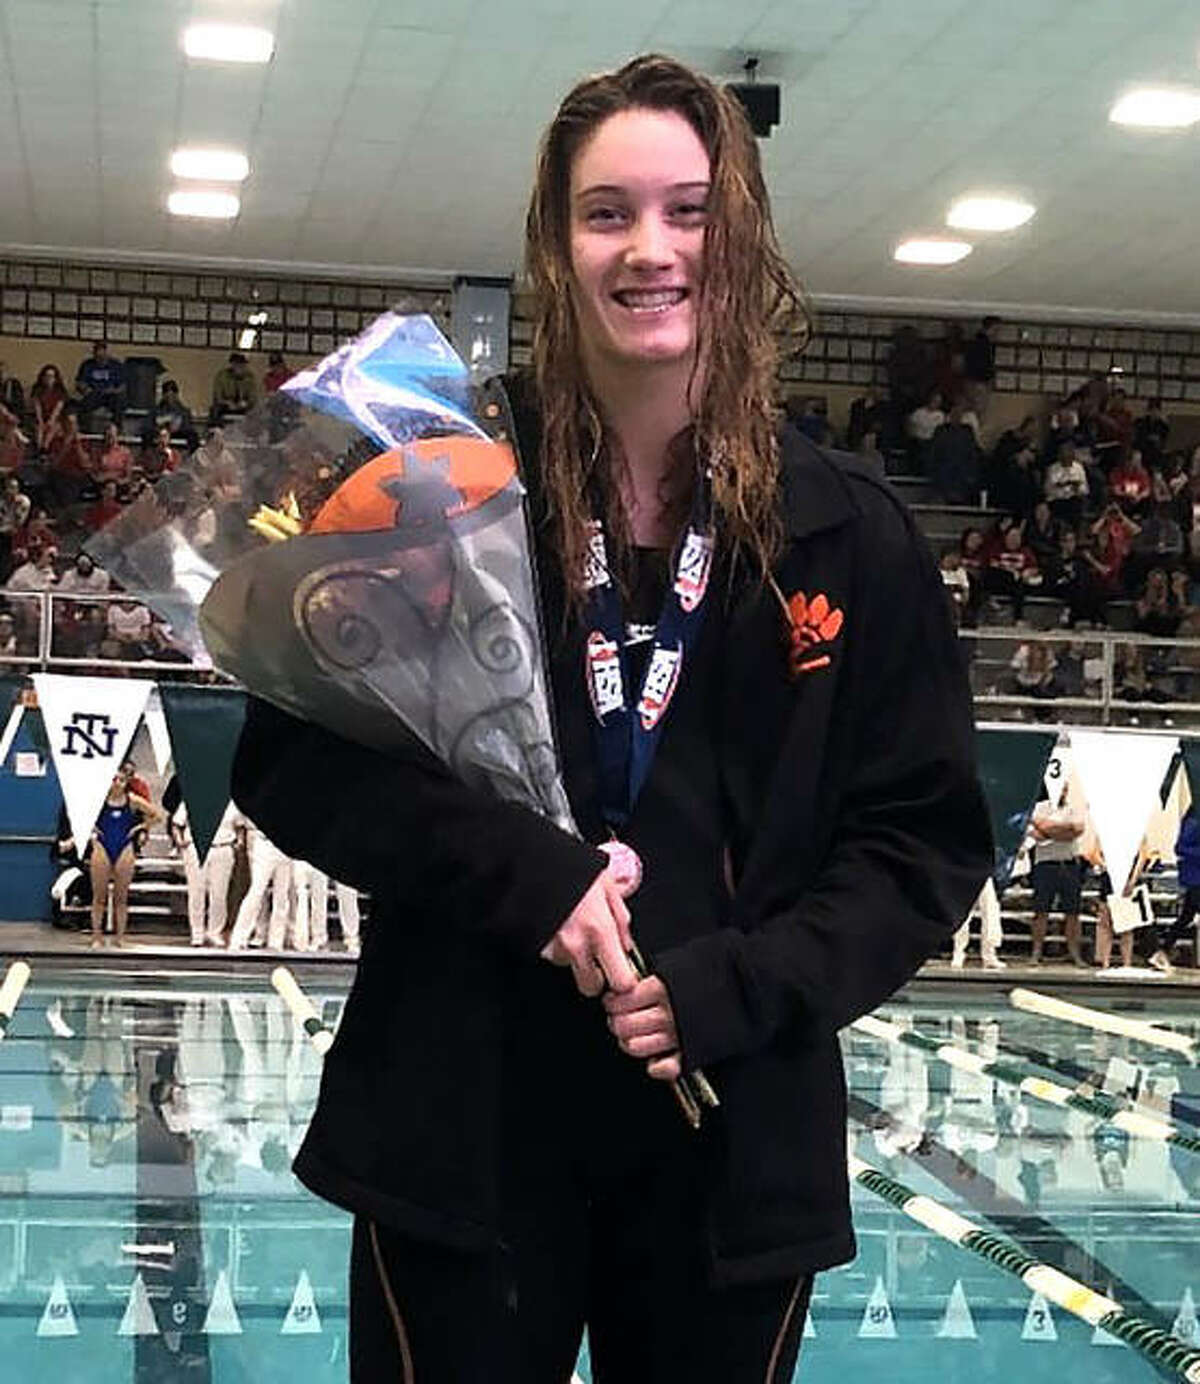 Edwardsville senior Josie Bushell poses with her medal after placing 12th in the 100-yard freestyle on Saturday in the finals of the state meet at New Trier High School.